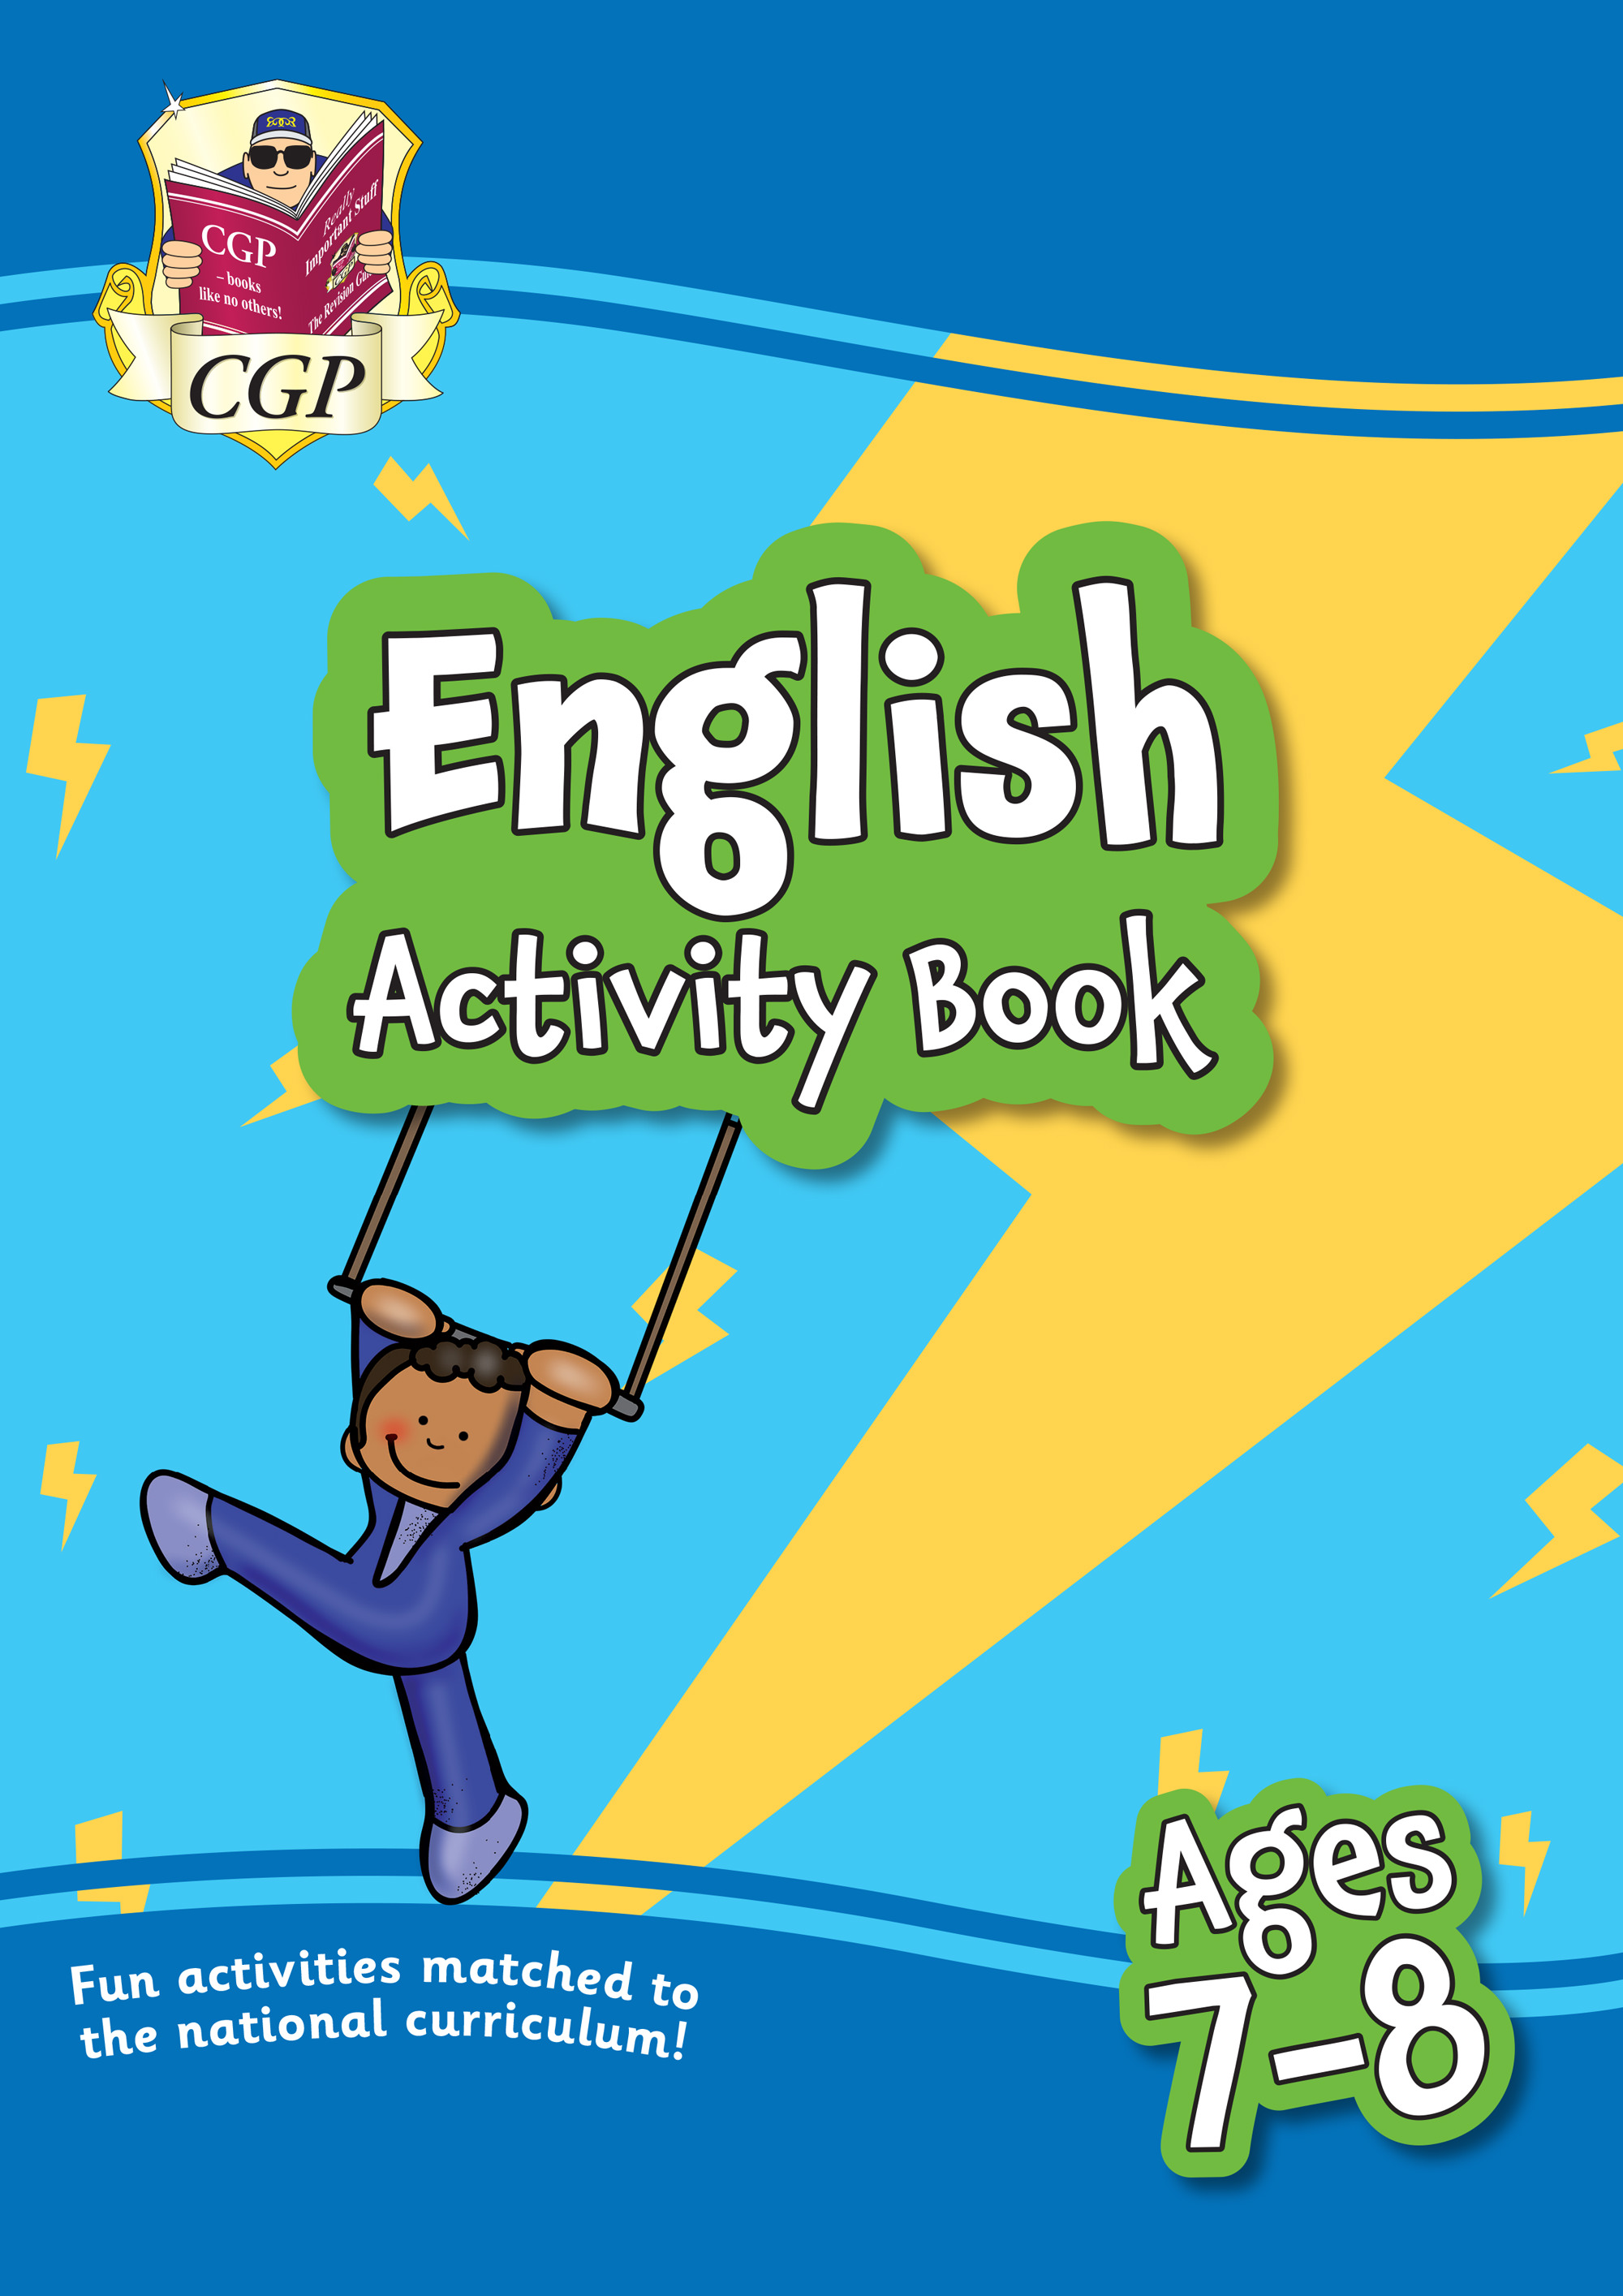 EPF3Q21 - New English Home Learning Activity Book for Ages 7-8